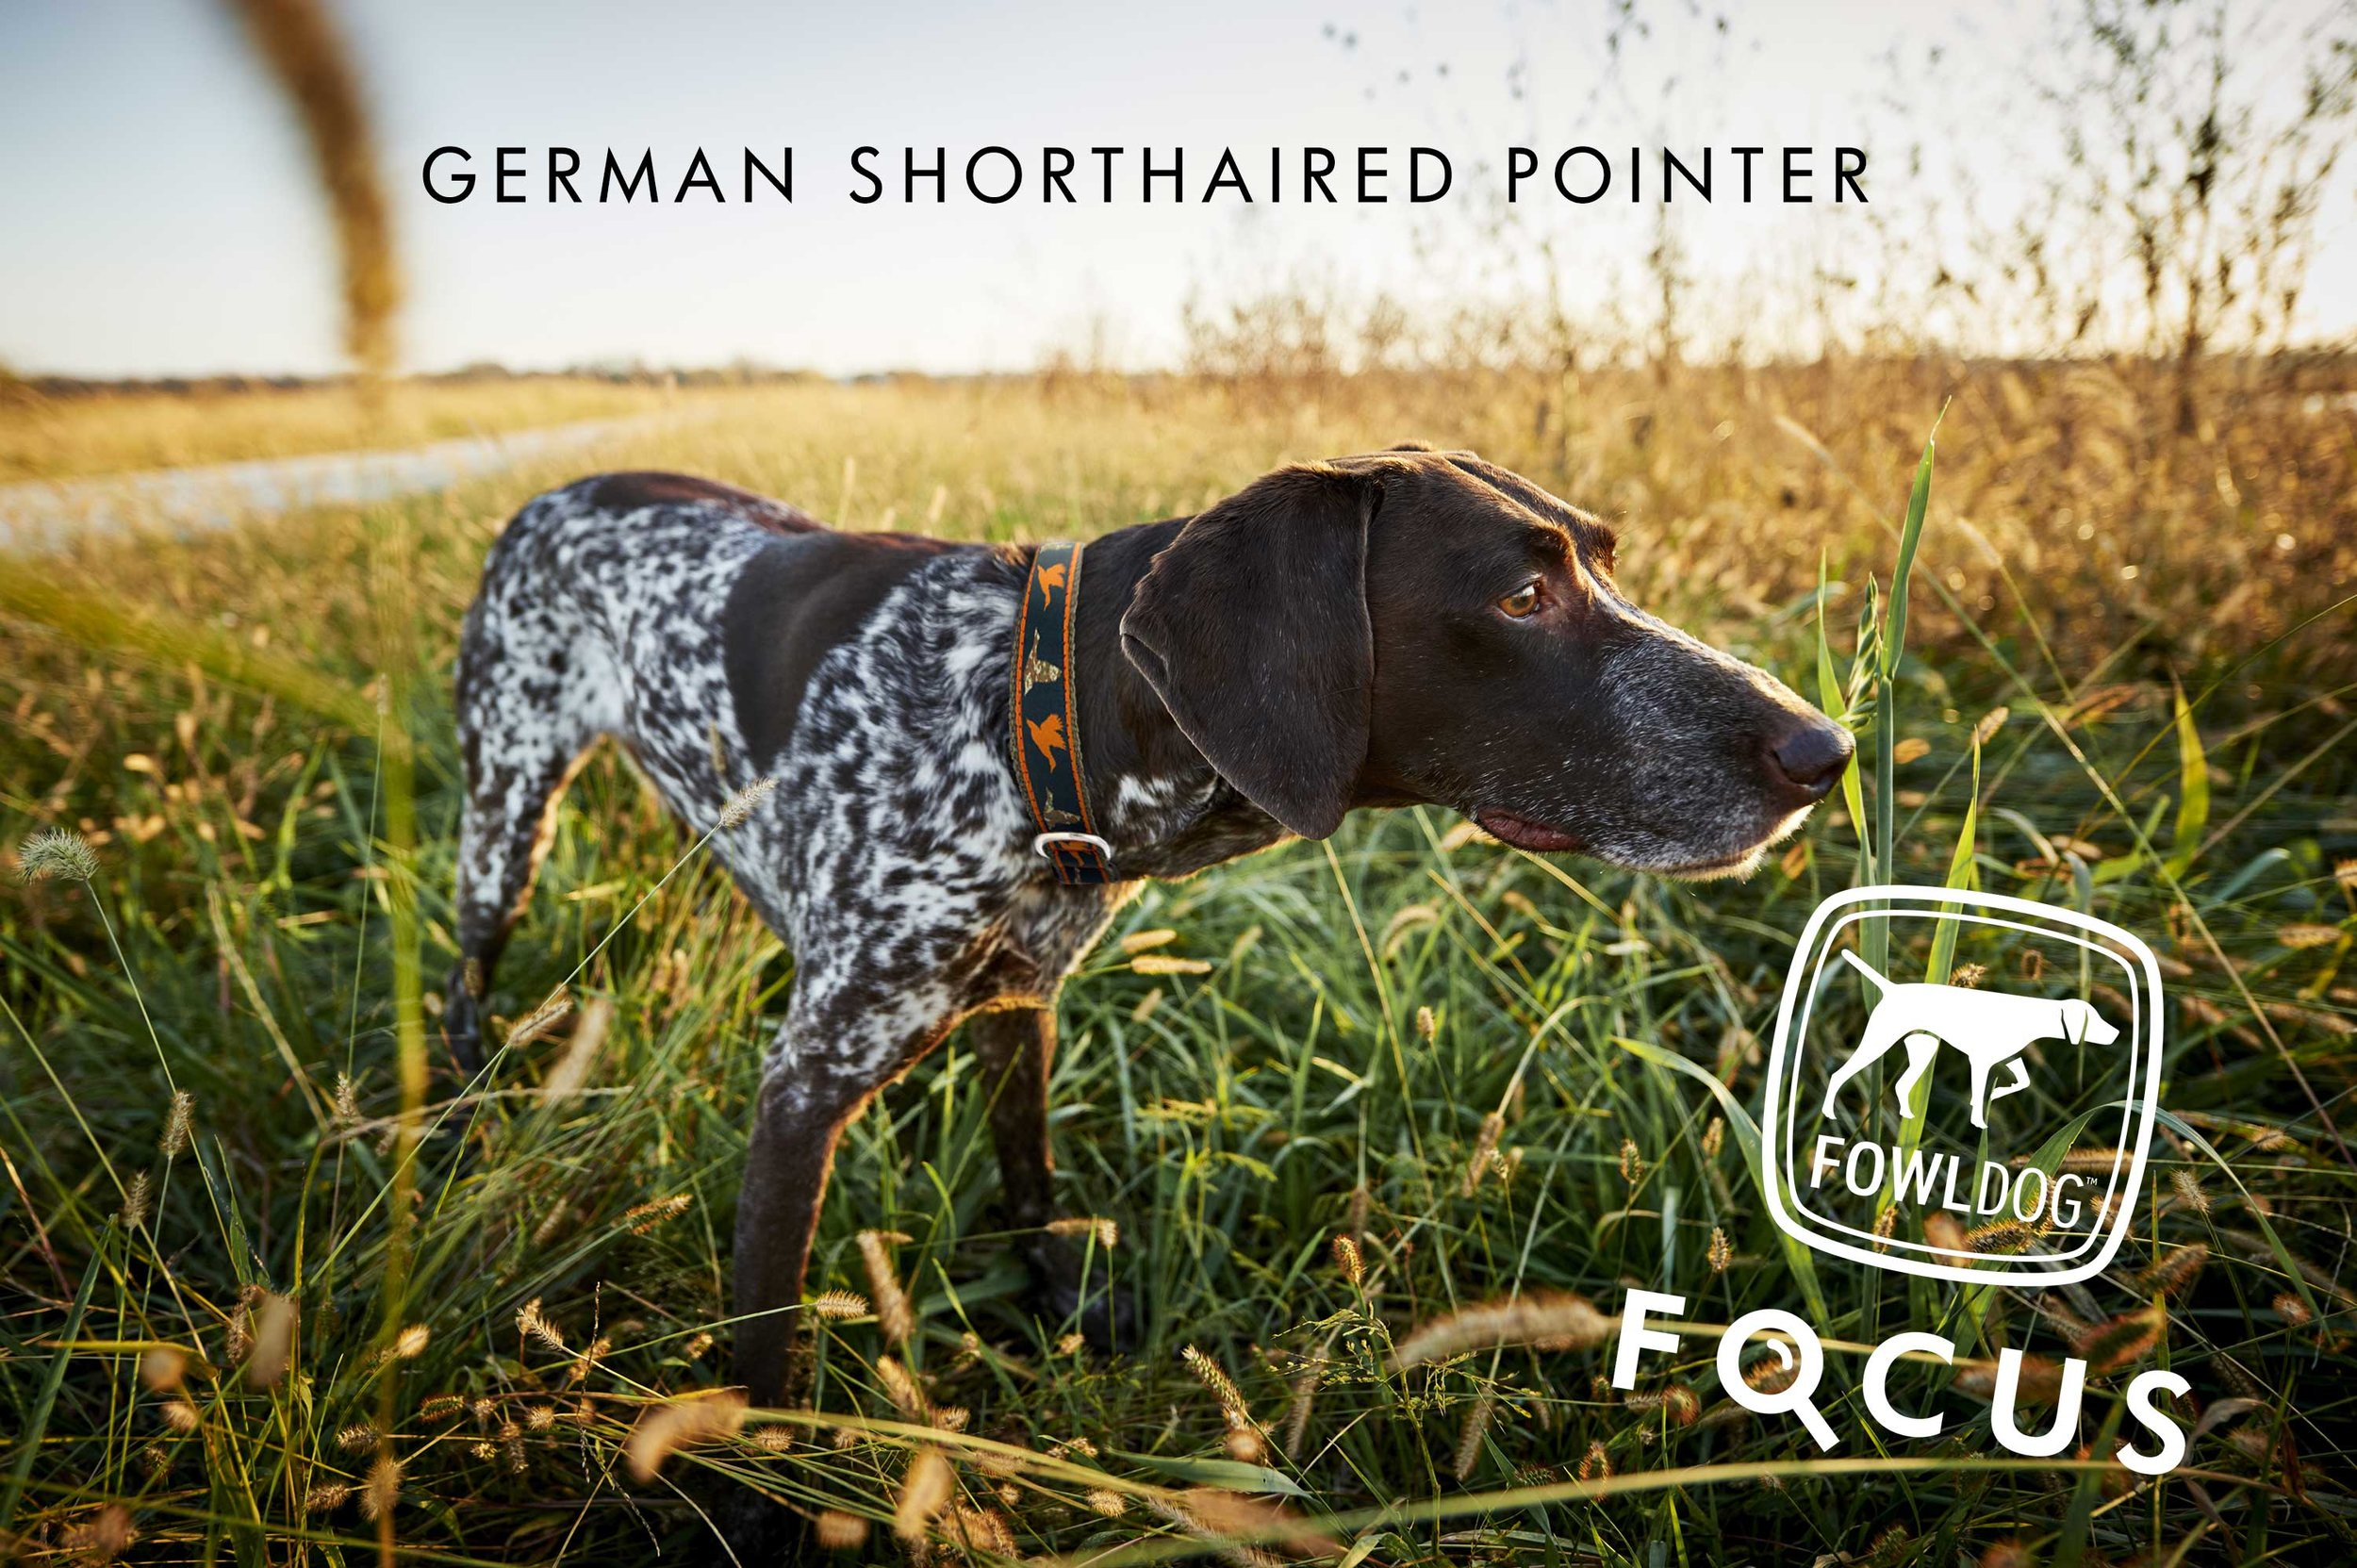 Introducing Fowl Dog Focus: The German Shorthaired Pointer